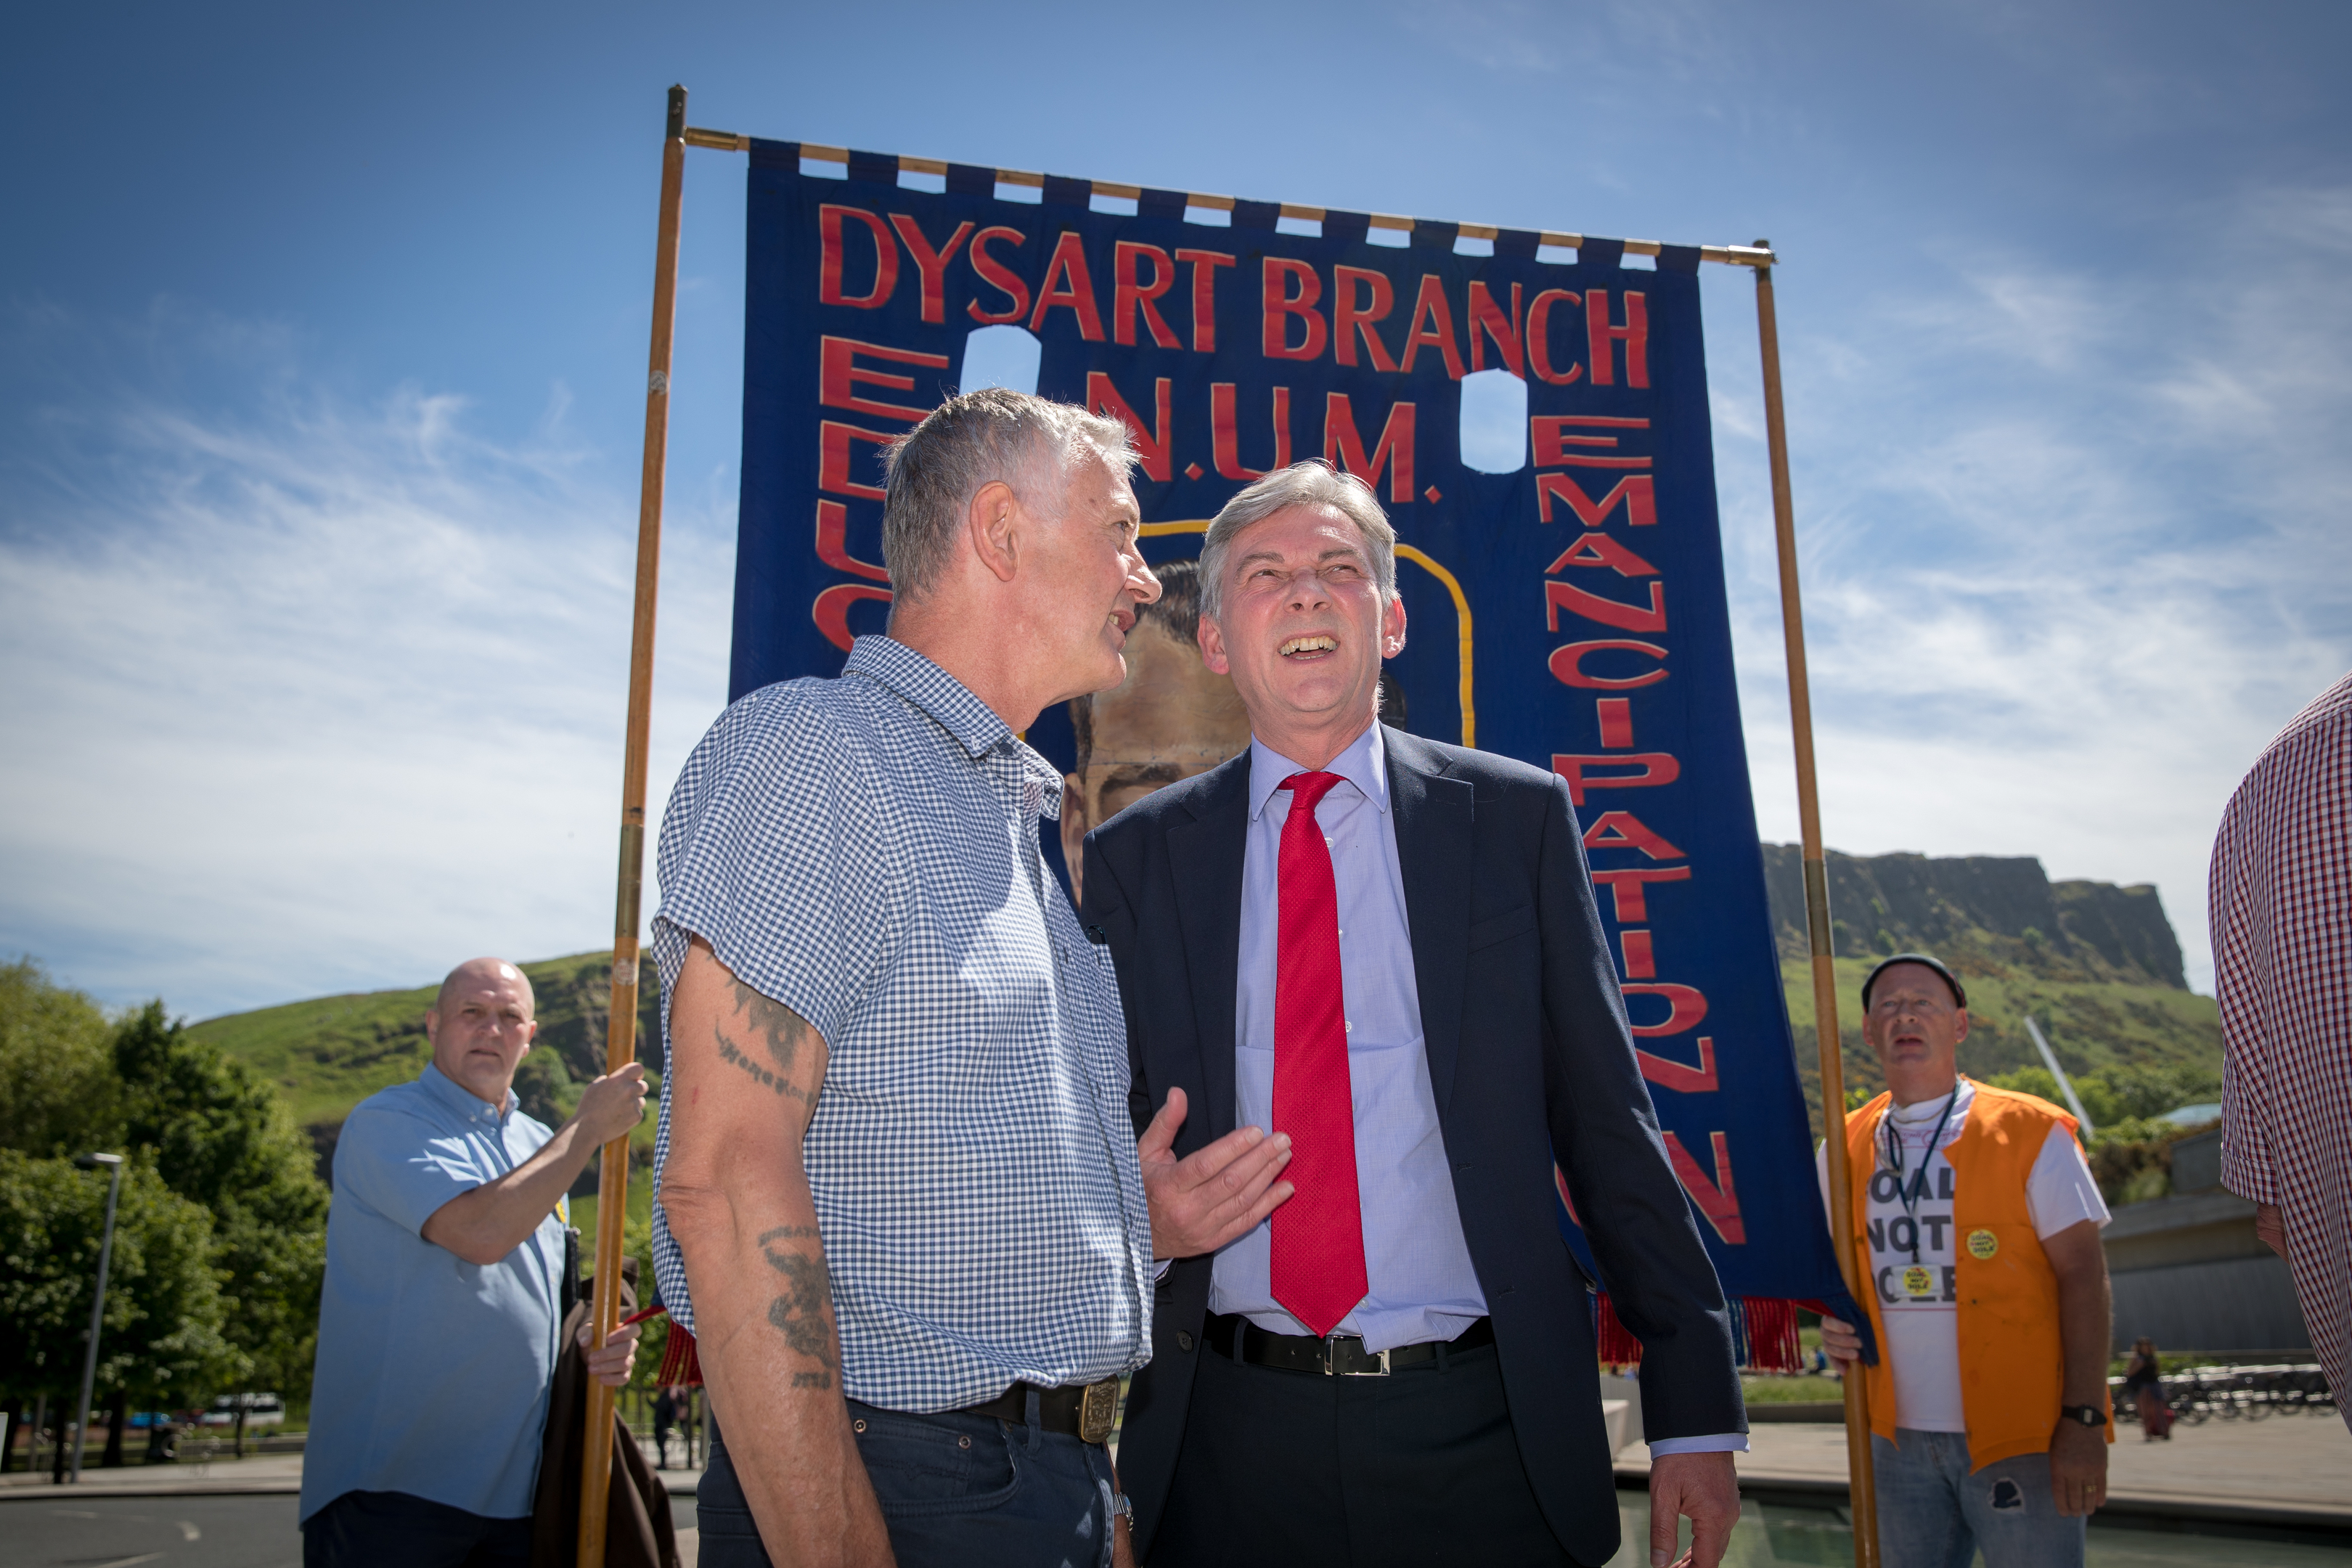 Two ex-miners from Fife, Tom Adams (L) and Bob Young, were met by Scottish Labour leader Richard Leonard along with dozens of former miners who gathered outside  Holyrood before a statement by Justice Minister Michael Matheson.